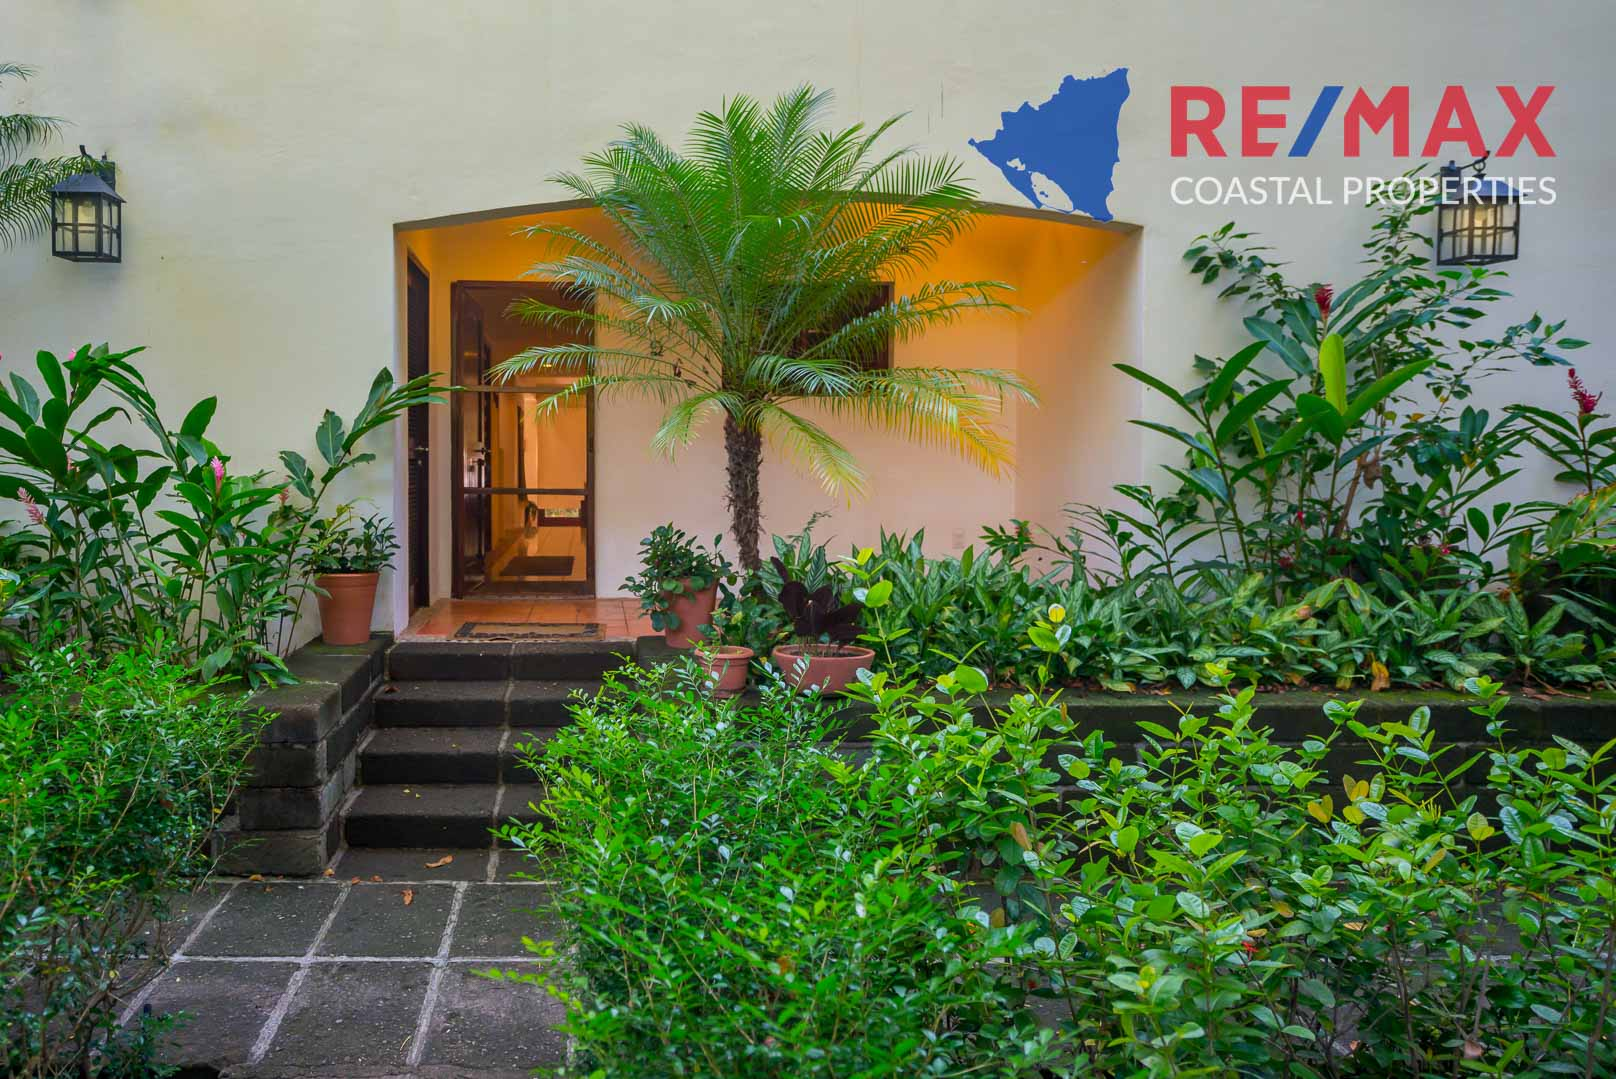 https://property-nicaragua.com/pedrodev/wp-content/uploads/2012/06/Playa-Coco-Townhome-2-REMAX-Coastal-Properties-38.jpg